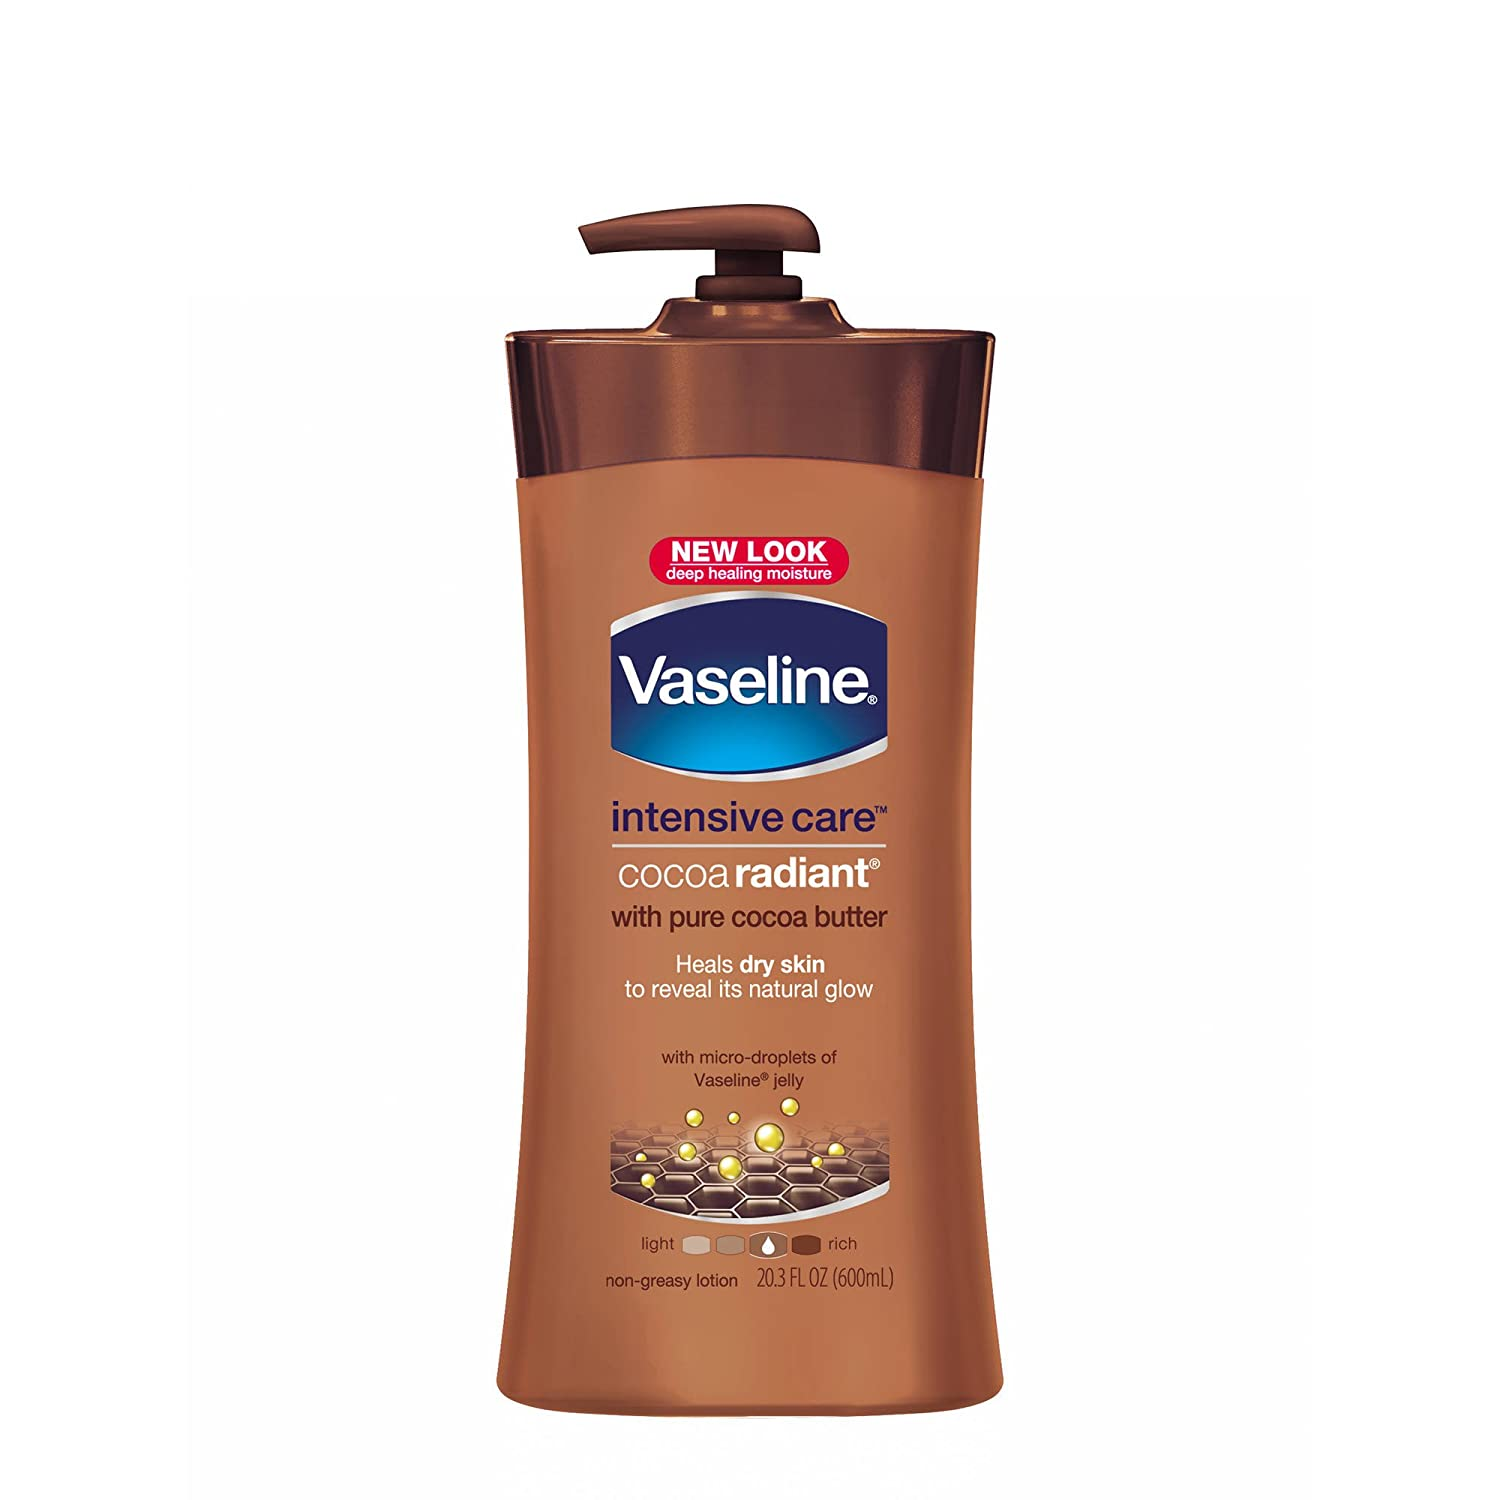 Vaseline Intensive Care hand and body lotion Cocoa Radiant 20.3 oz: Health & Personal Care